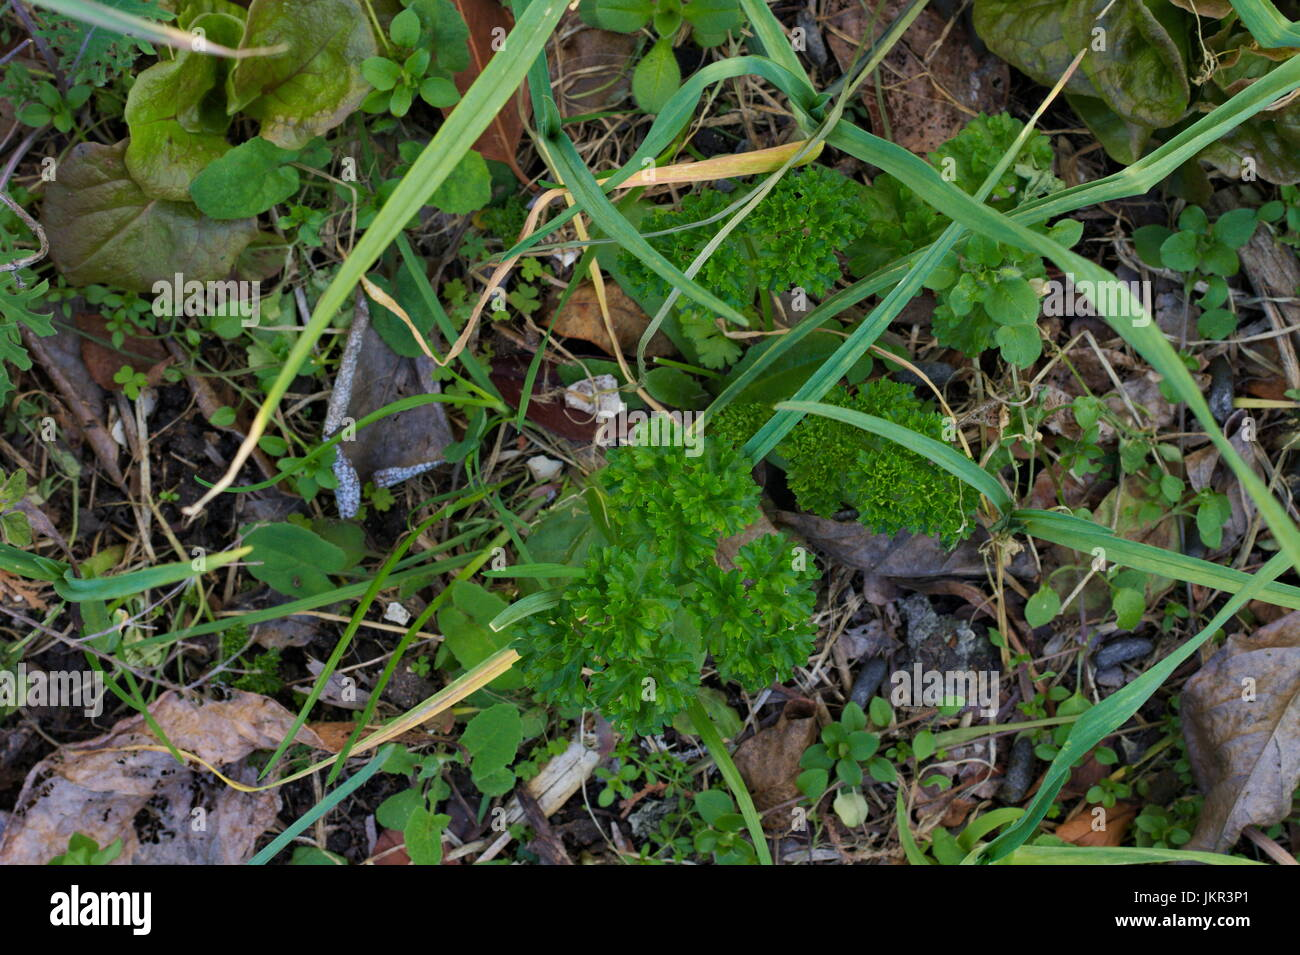 parsley seedling stockfotos parsley seedling bilder alamy. Black Bedroom Furniture Sets. Home Design Ideas